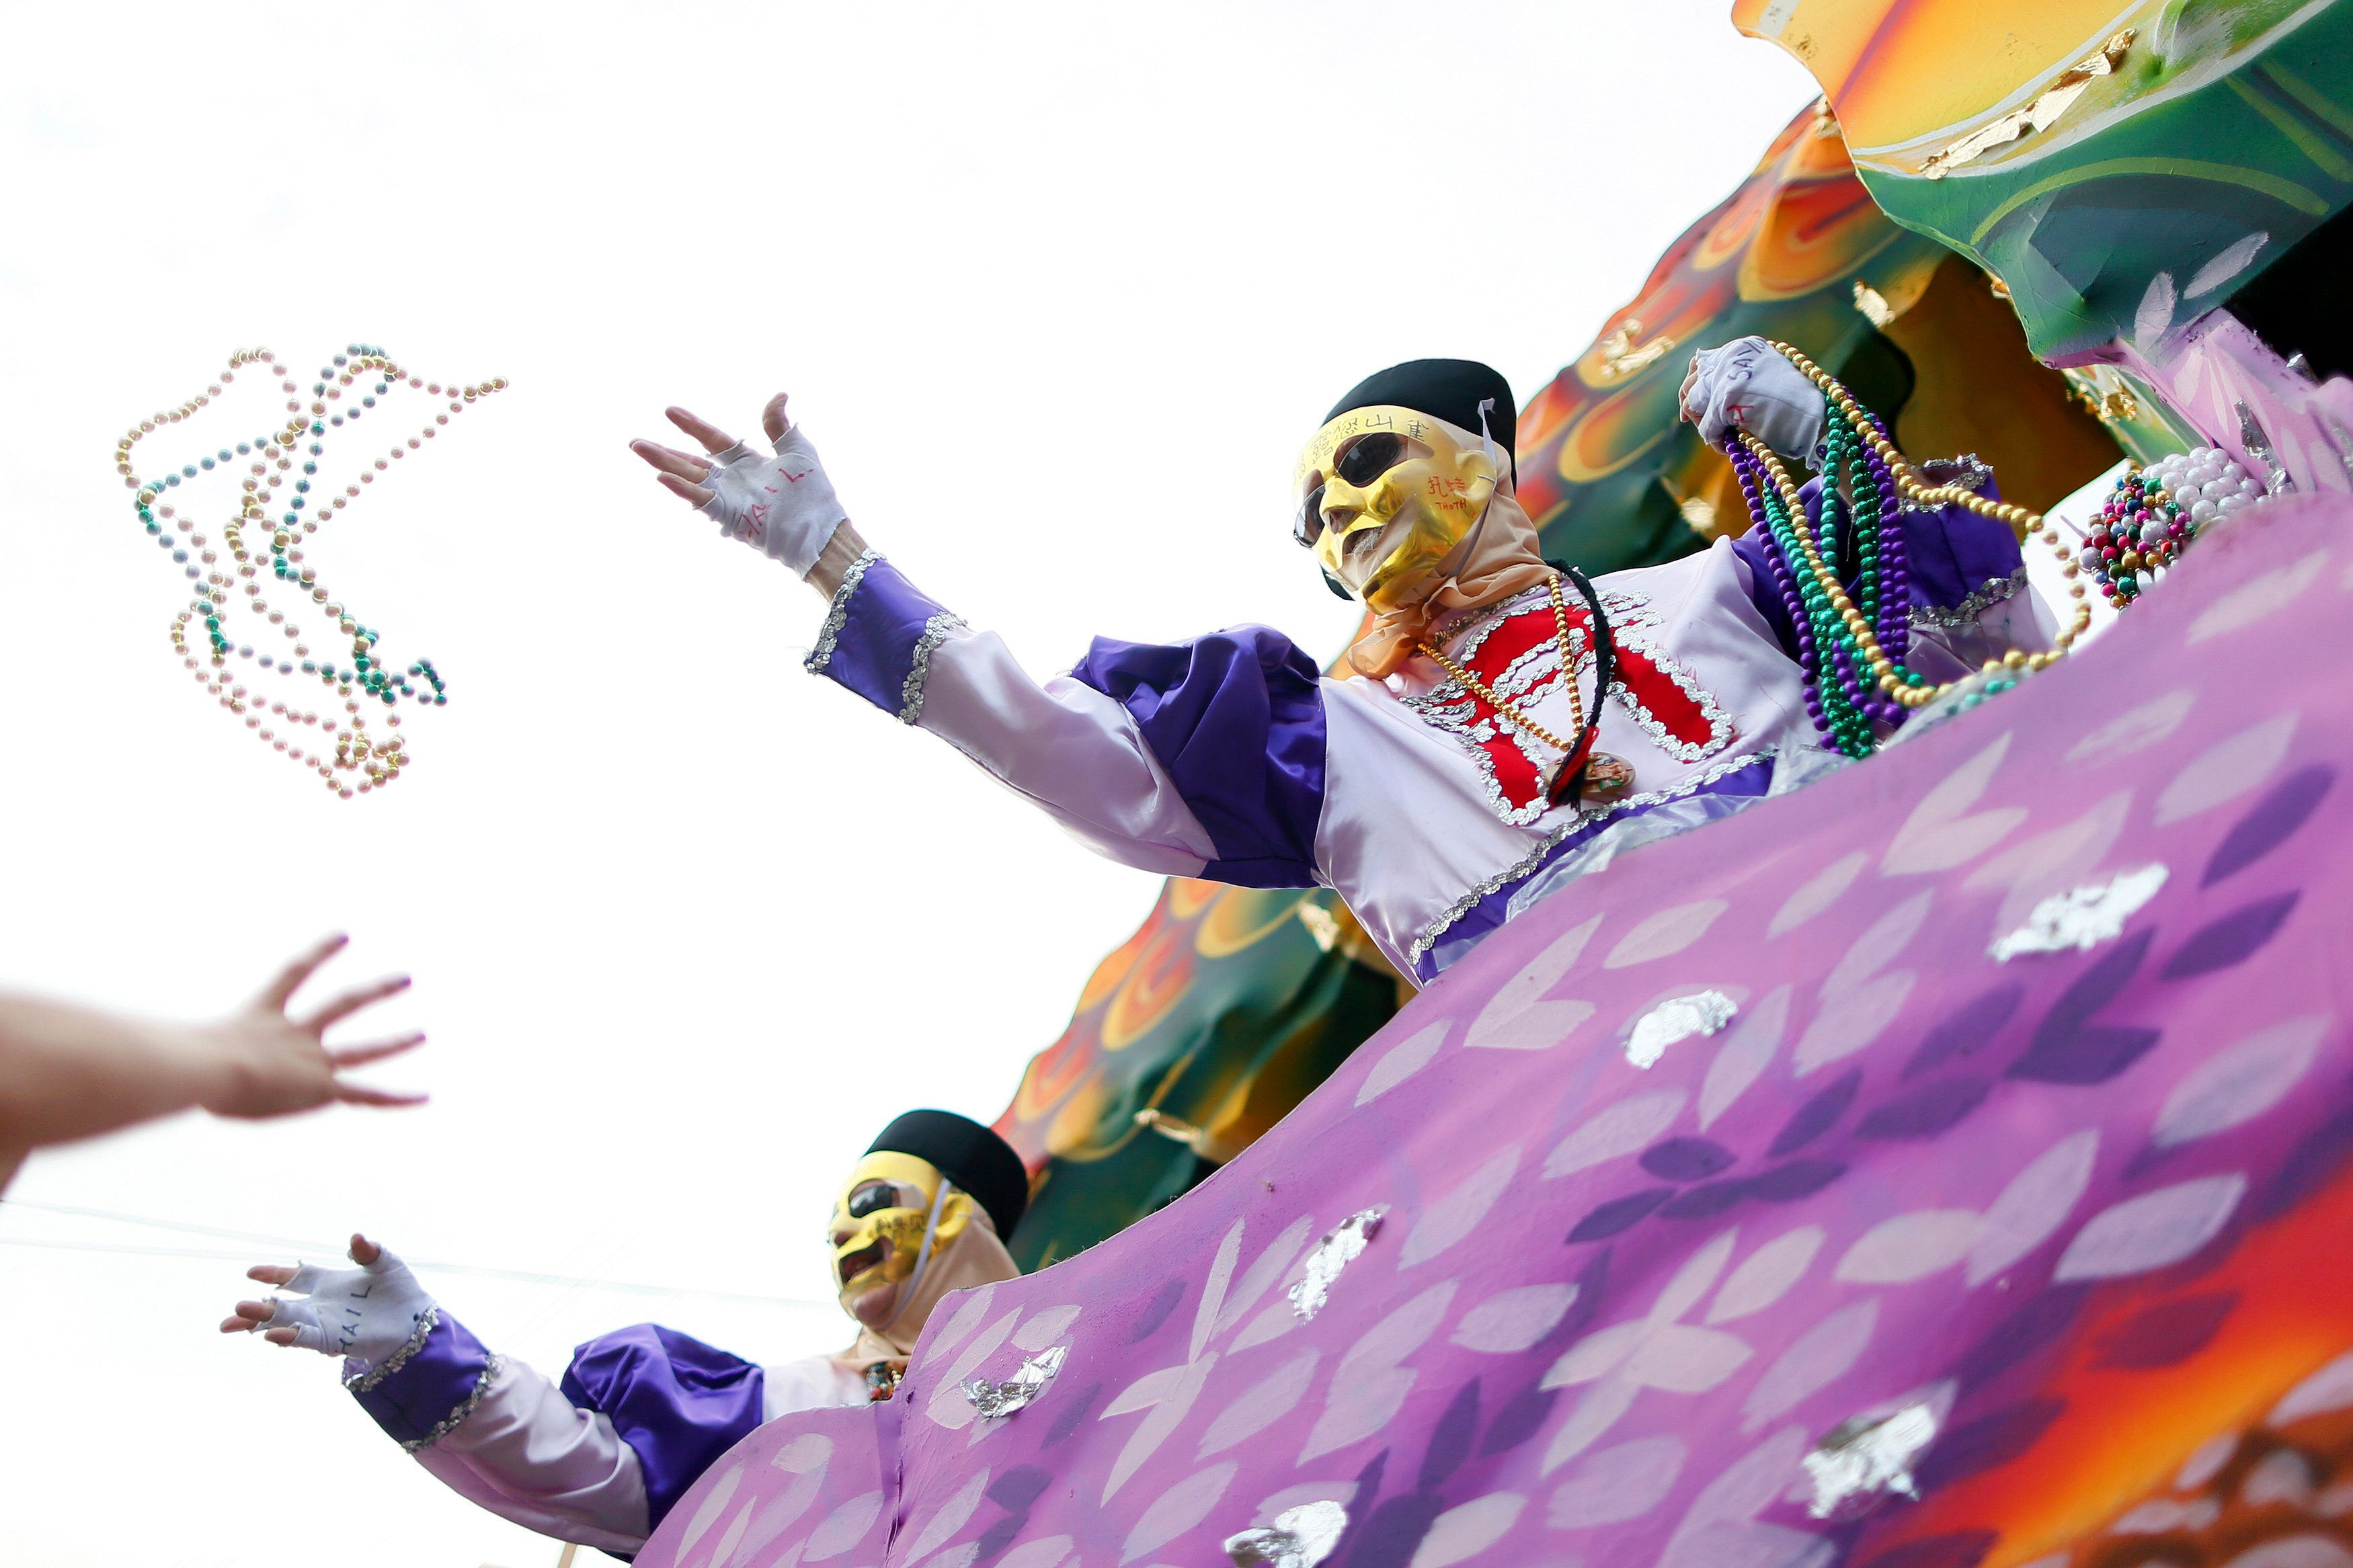 A member of the Krewe of Thoth throws beads during a Mardi Gras parade in New Orleans, Louisiana February 15, 2015. REUTERS/Jonathan Bachman (UNITED STATES - Tags: SOCIETY)